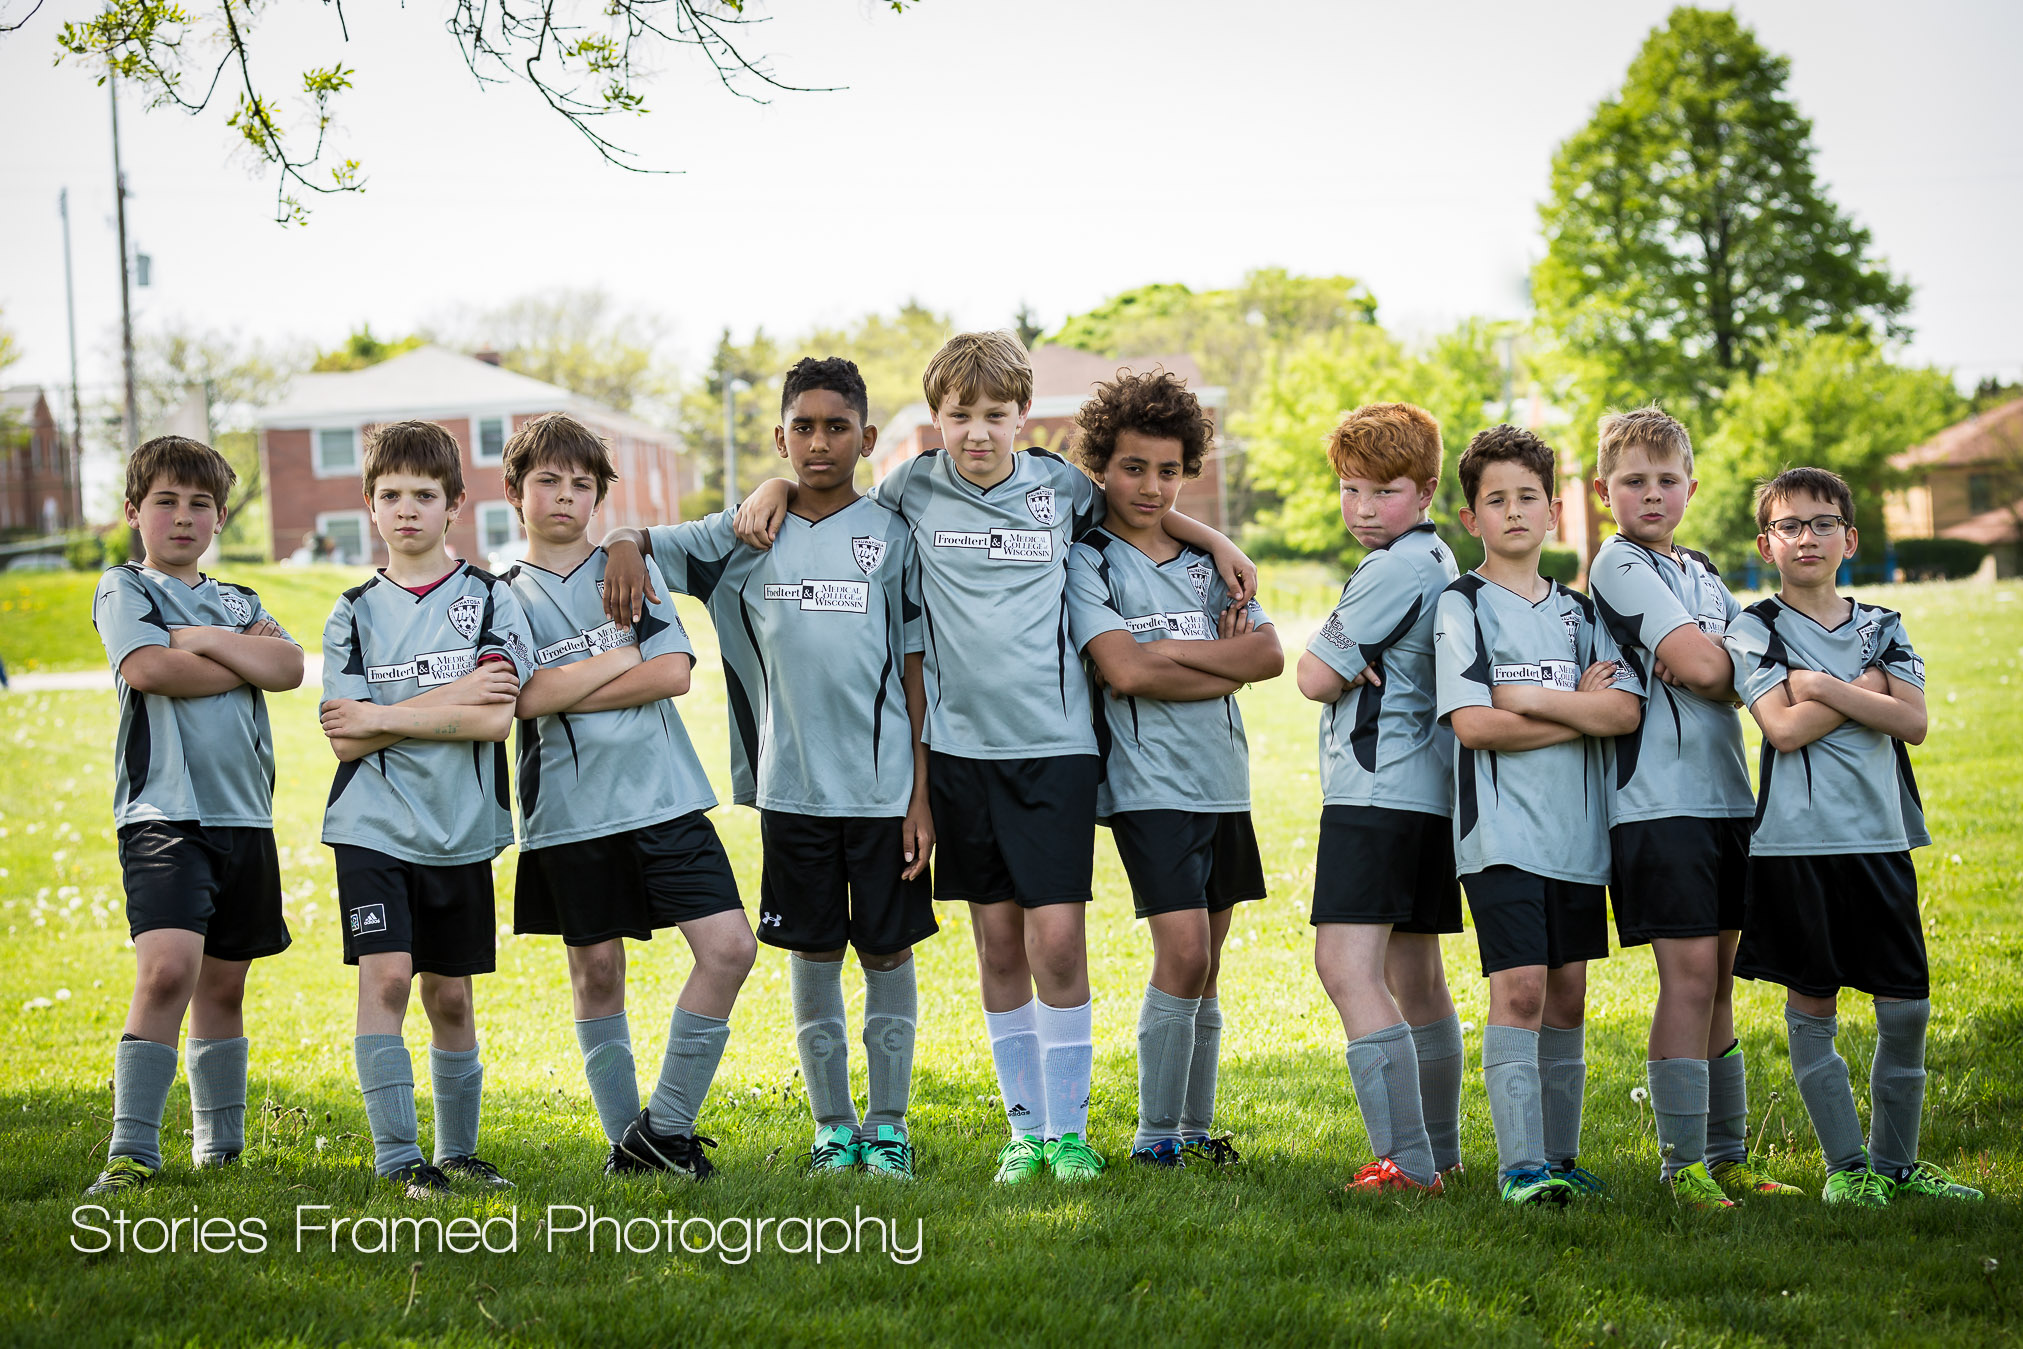 Wauwatosa-Tosa-Kickers-soccer-team-photo-color